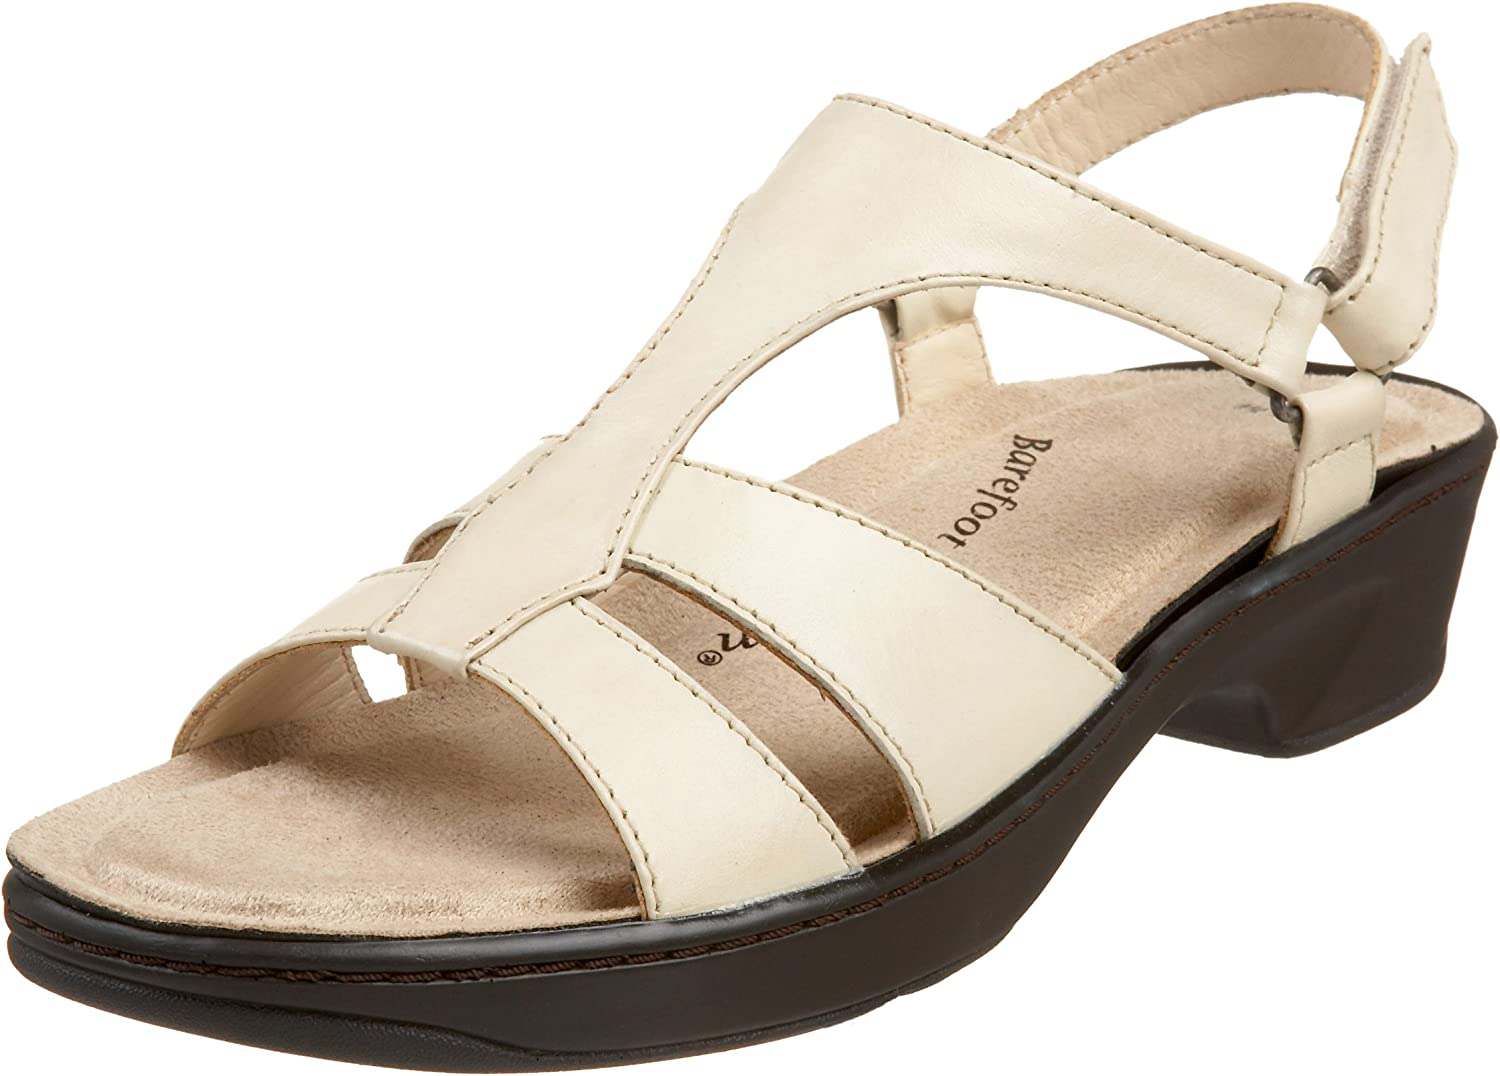 Drew shoes Women's Dahlia Sandal